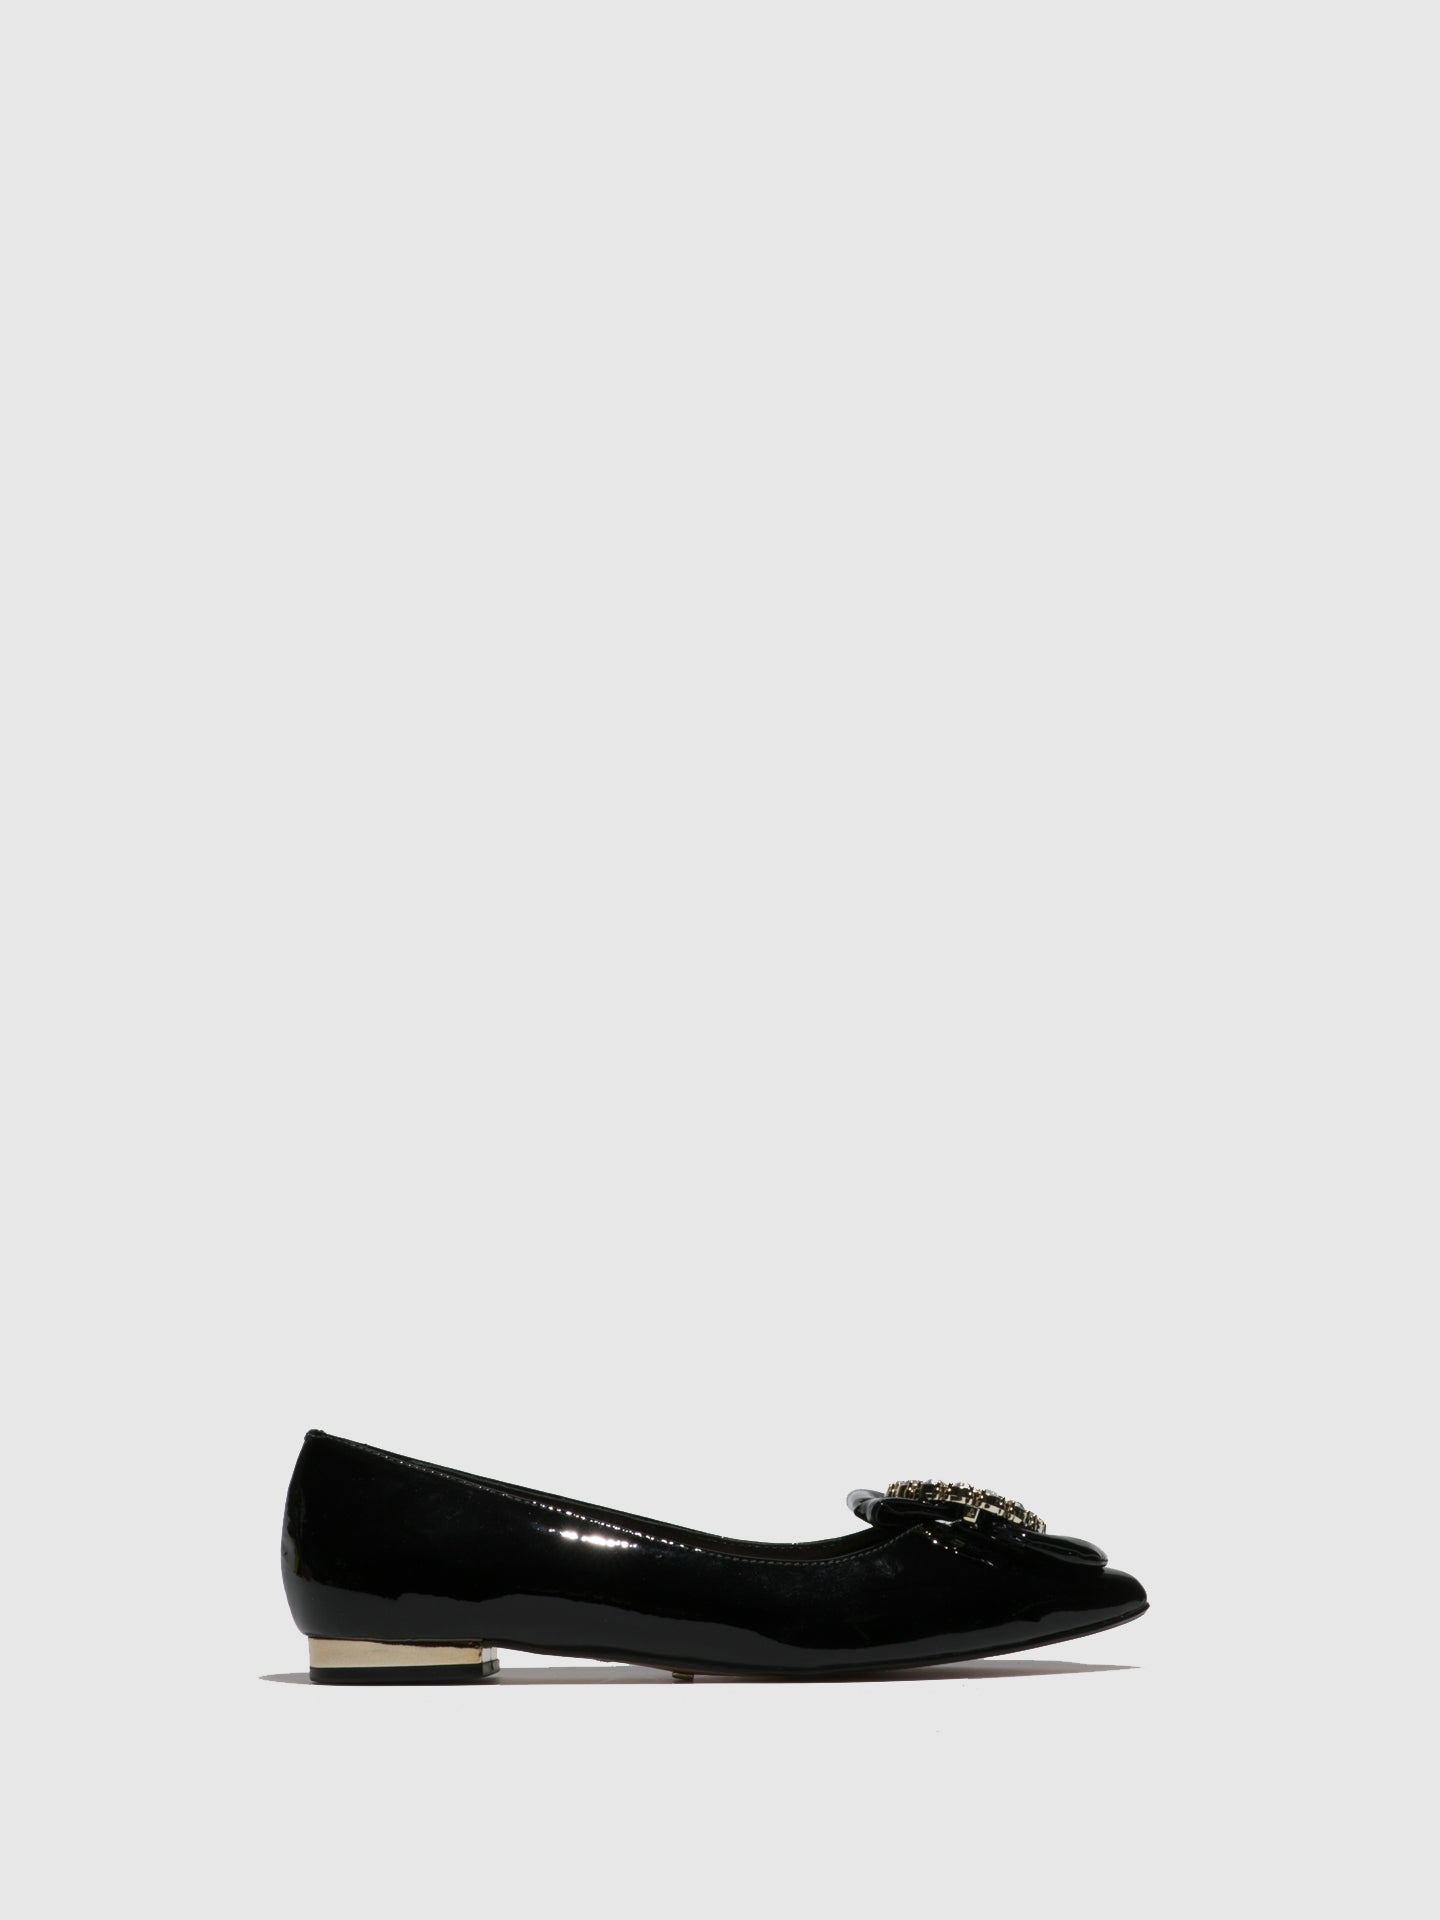 Parodi Passion Black Flat Shoes